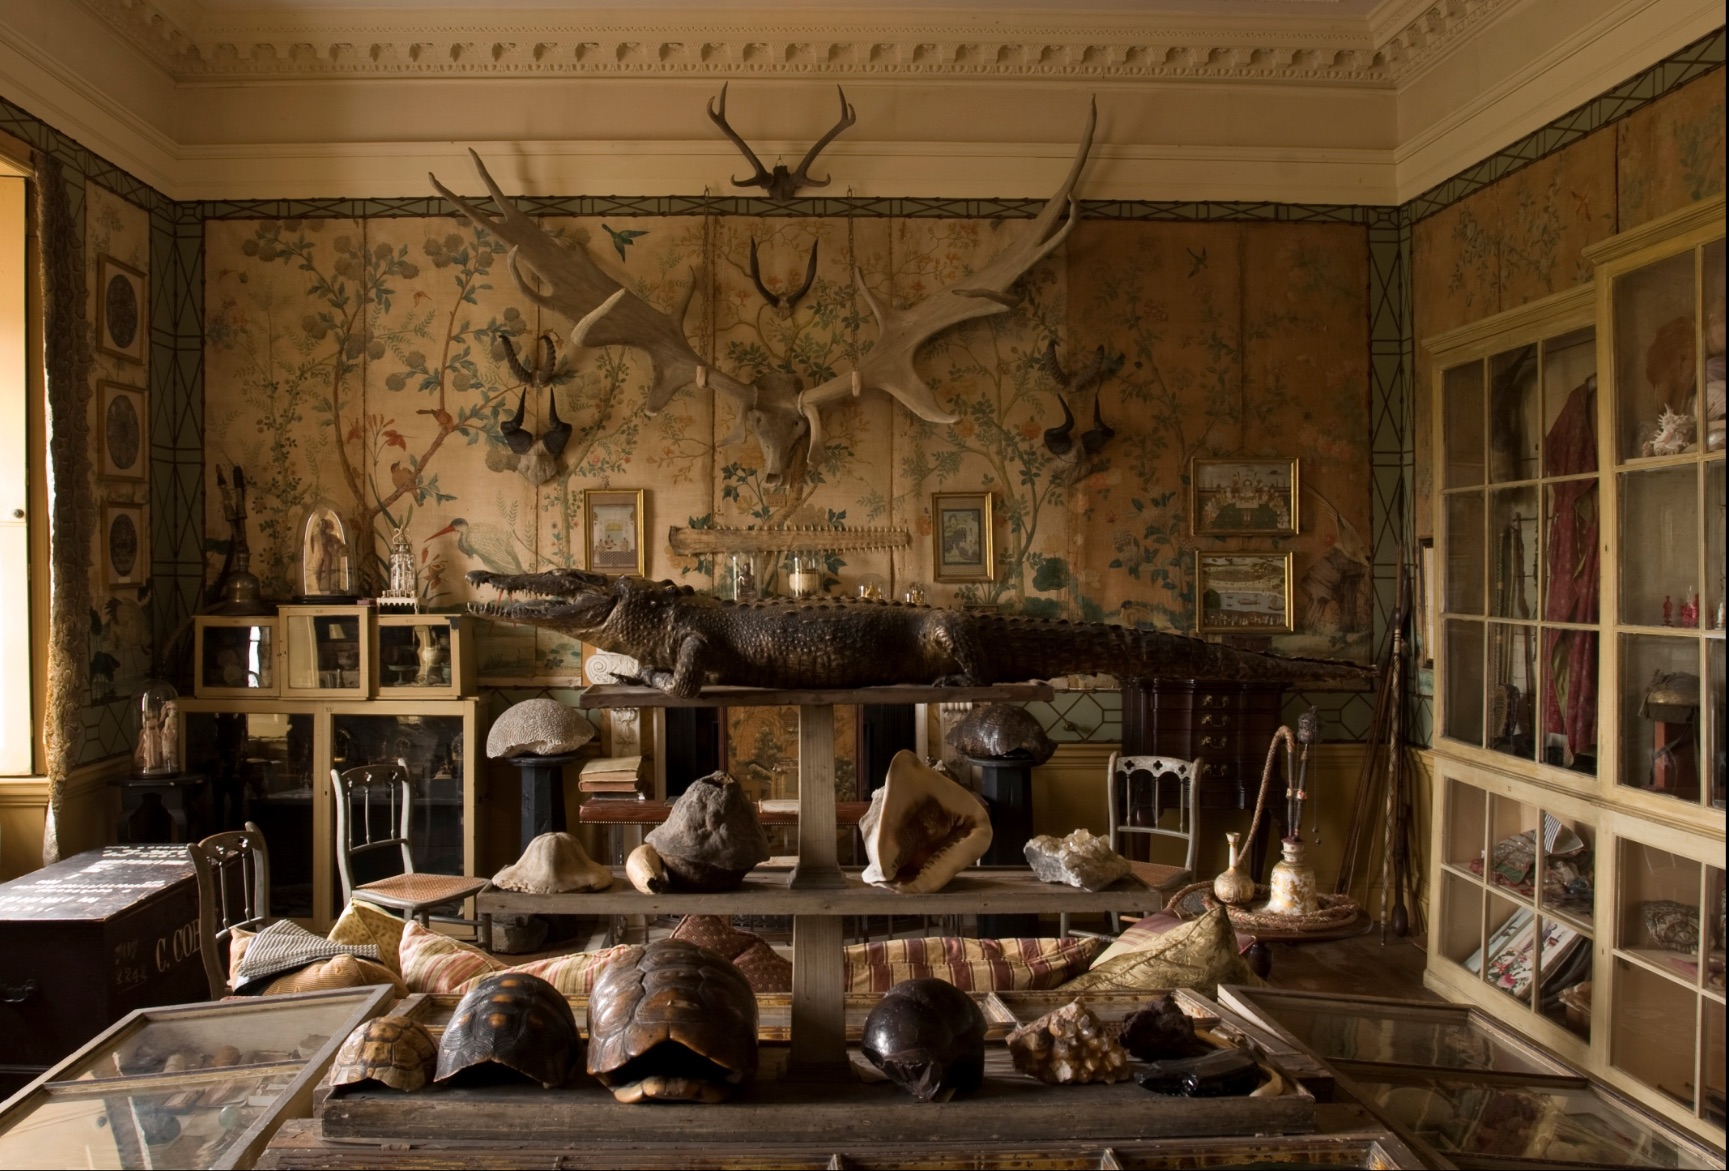 Cabinet of Curiosities, Hatchlands